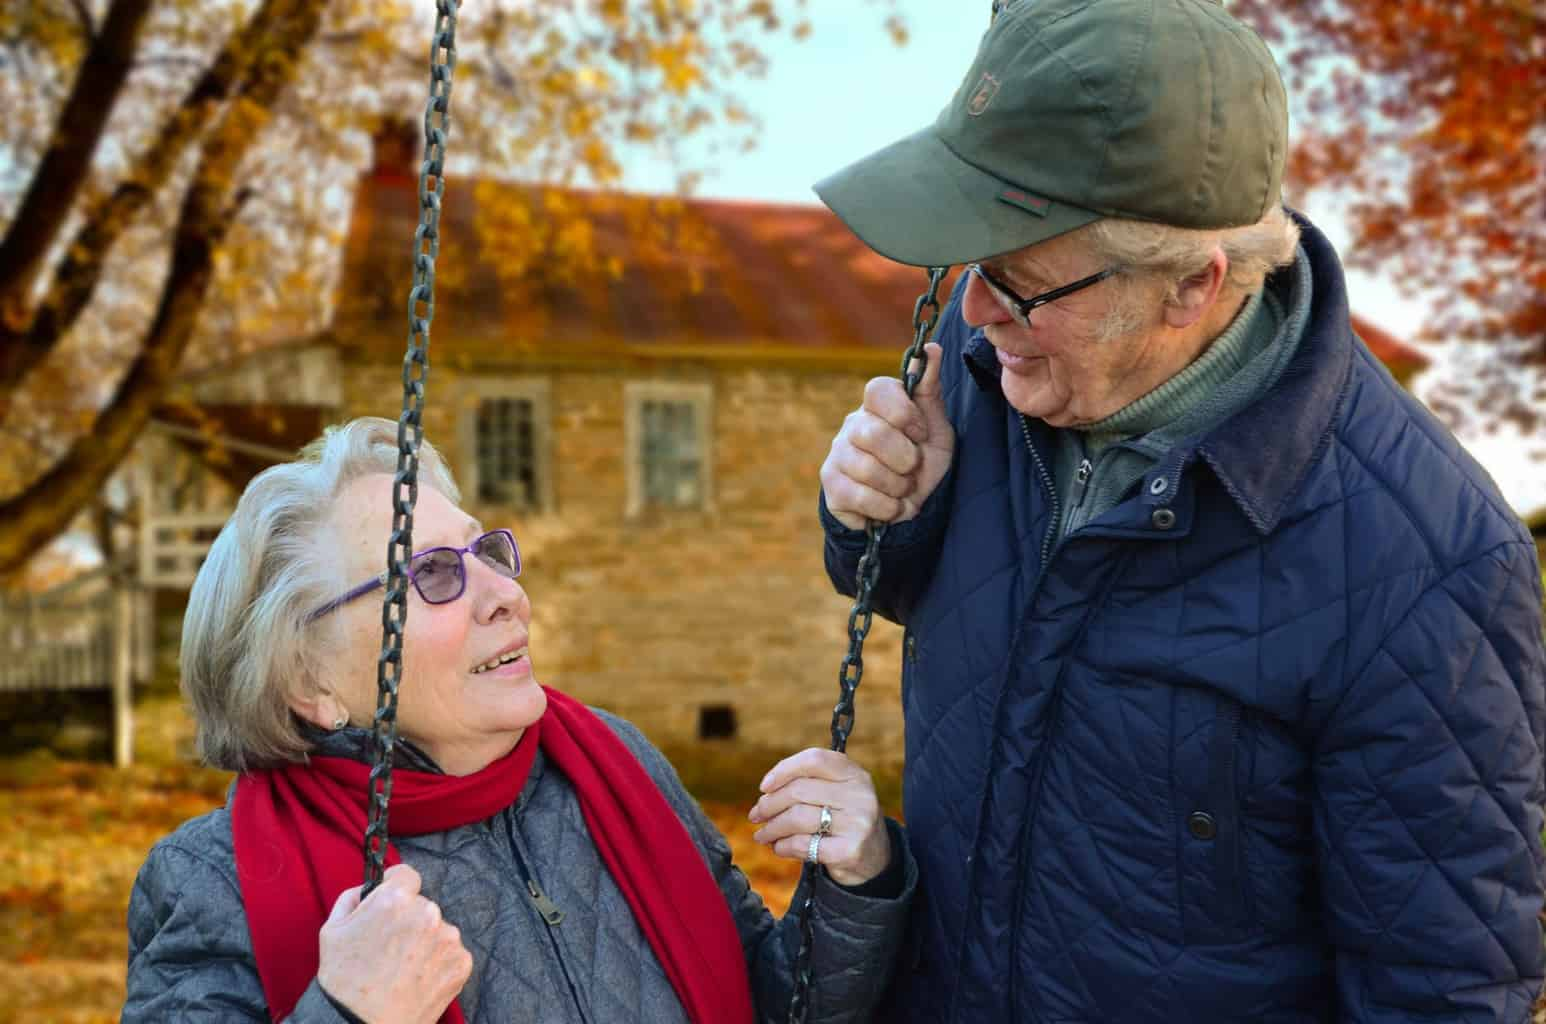 5 effective online tests to detect early signs of dementia and Alzheimer's disease